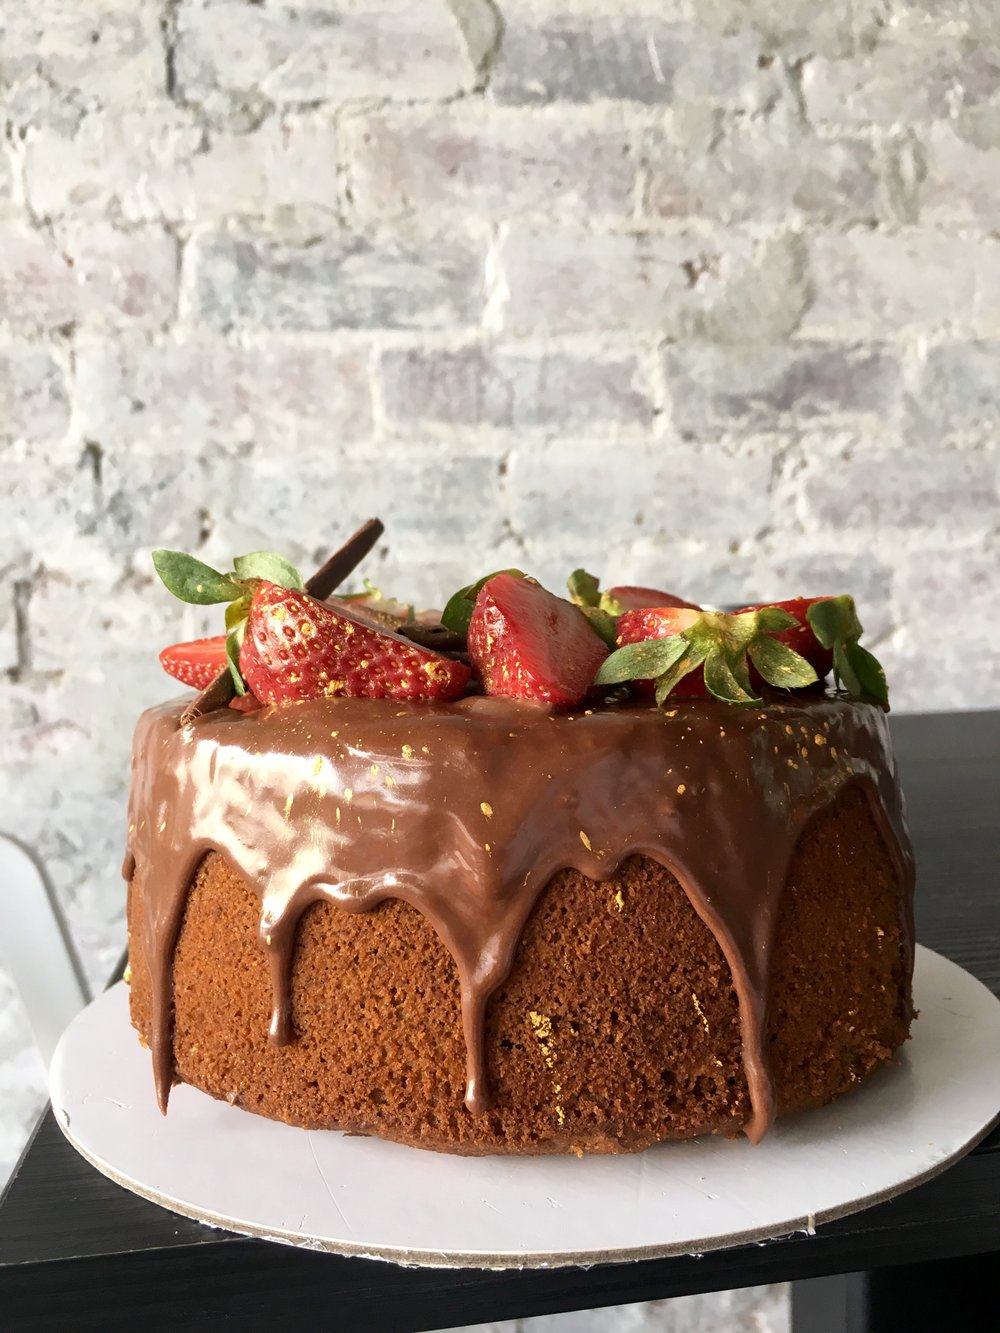 Chocolate strawberry - Light super fluffy chocolate chiffon cake, with centre of strawberry coulis, chocolate coconut ganache and fresh berries.